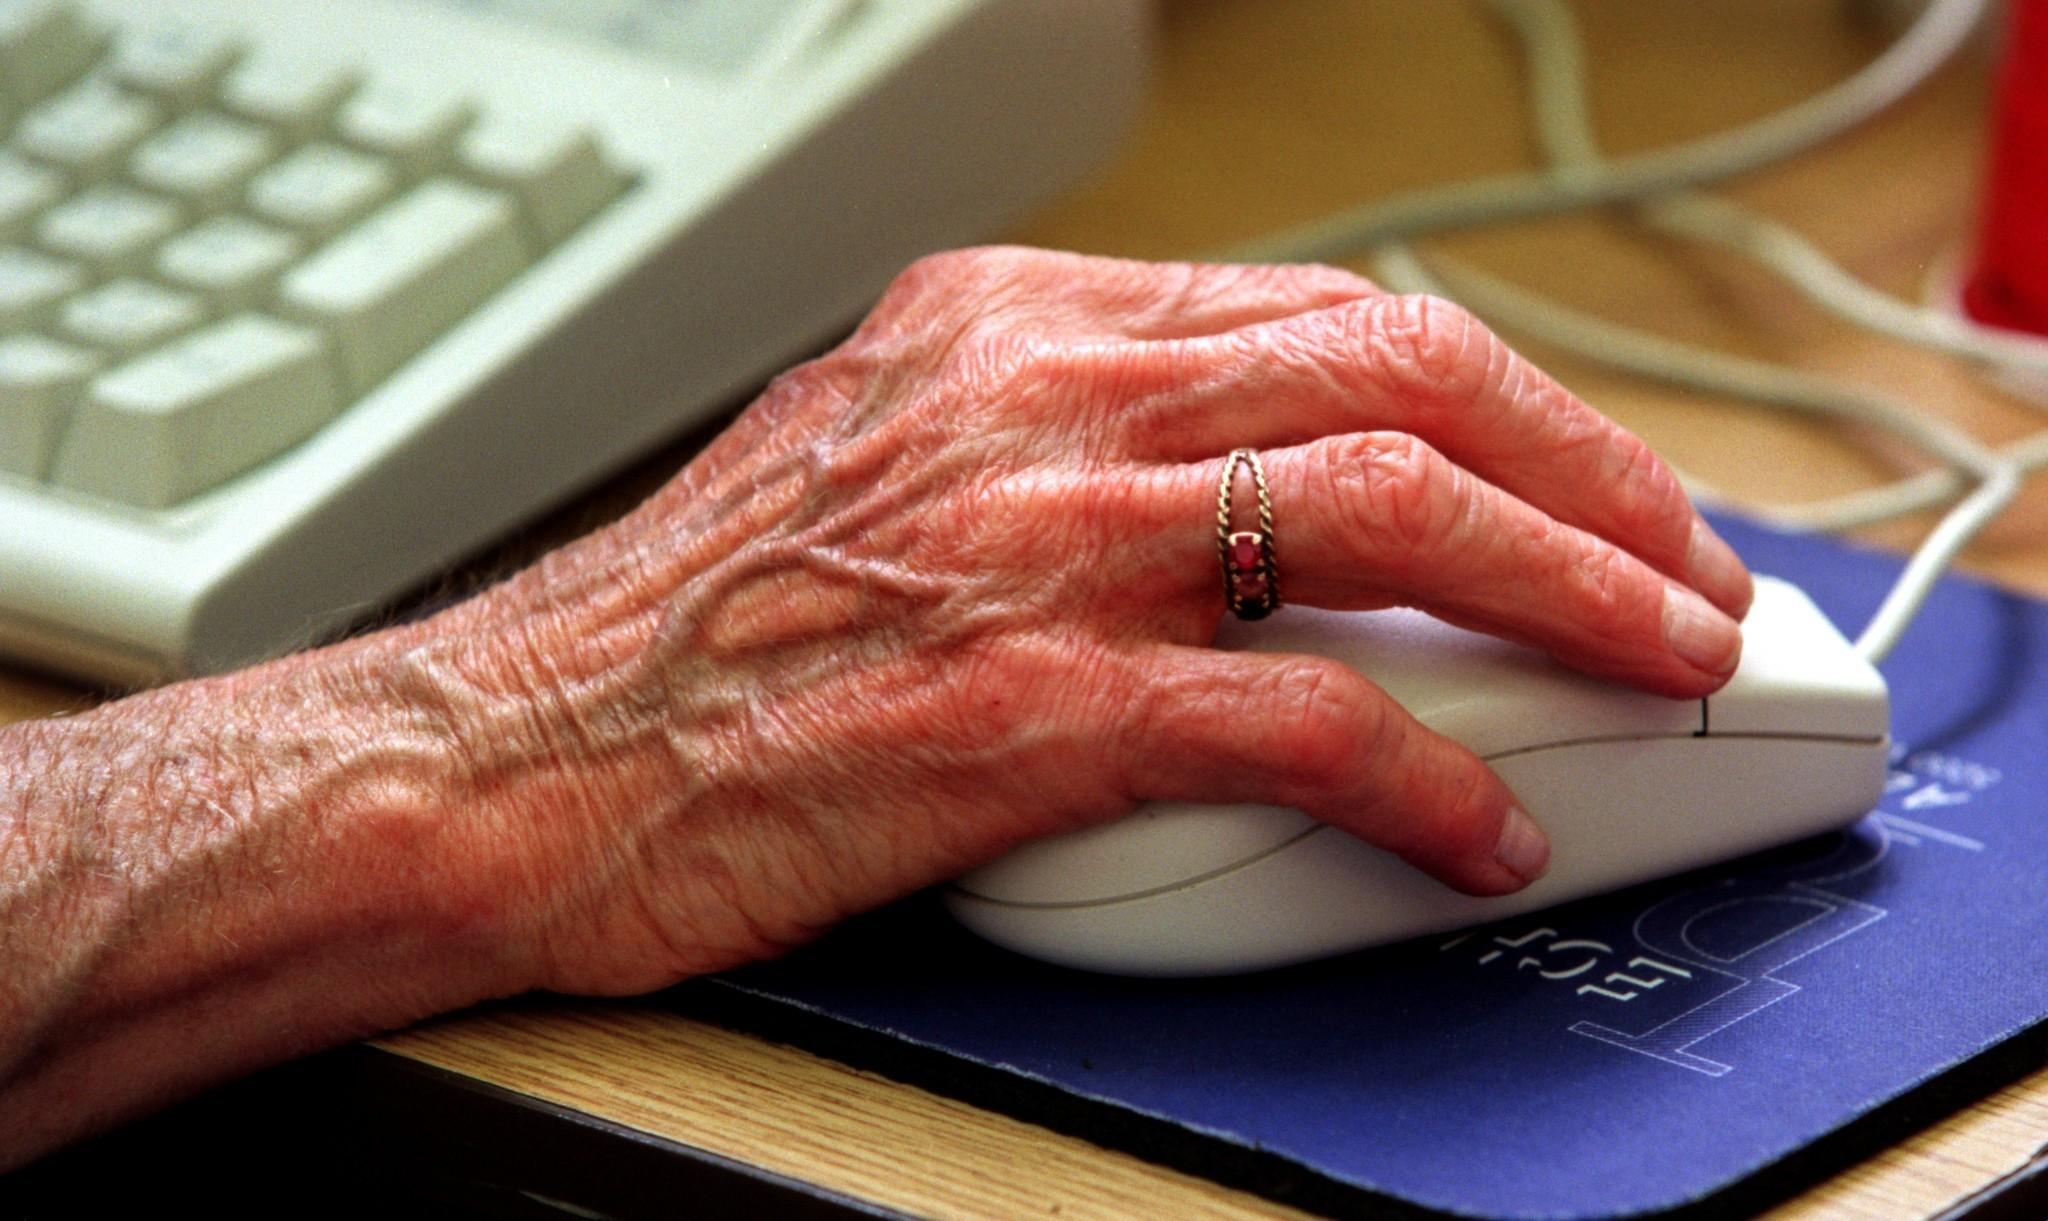 the aging paradox the older we get the happier we are la times senior citizens rarely consult dr google for medical advice study says